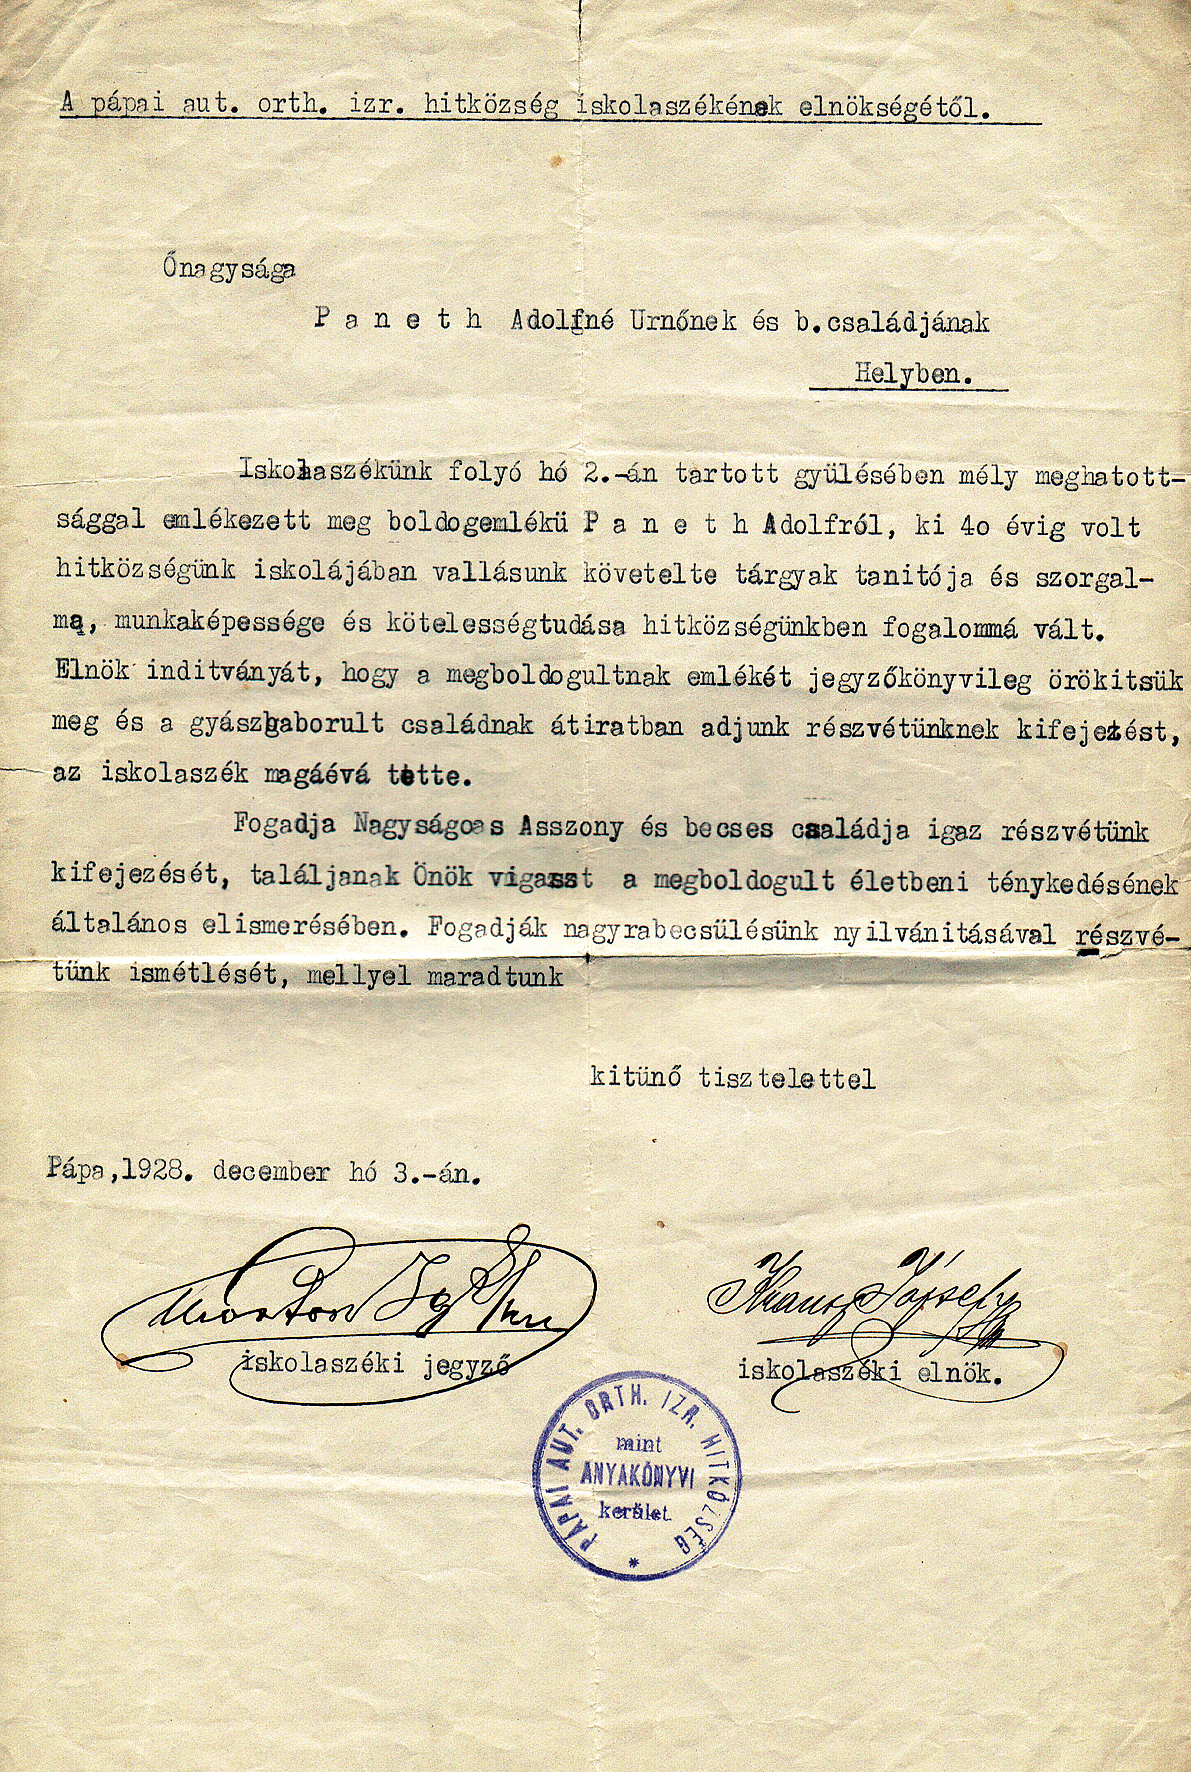 Letter from the leadership of the Orthodox community of Papa about Gabor Paneth's grandfather, Adolf Paneth